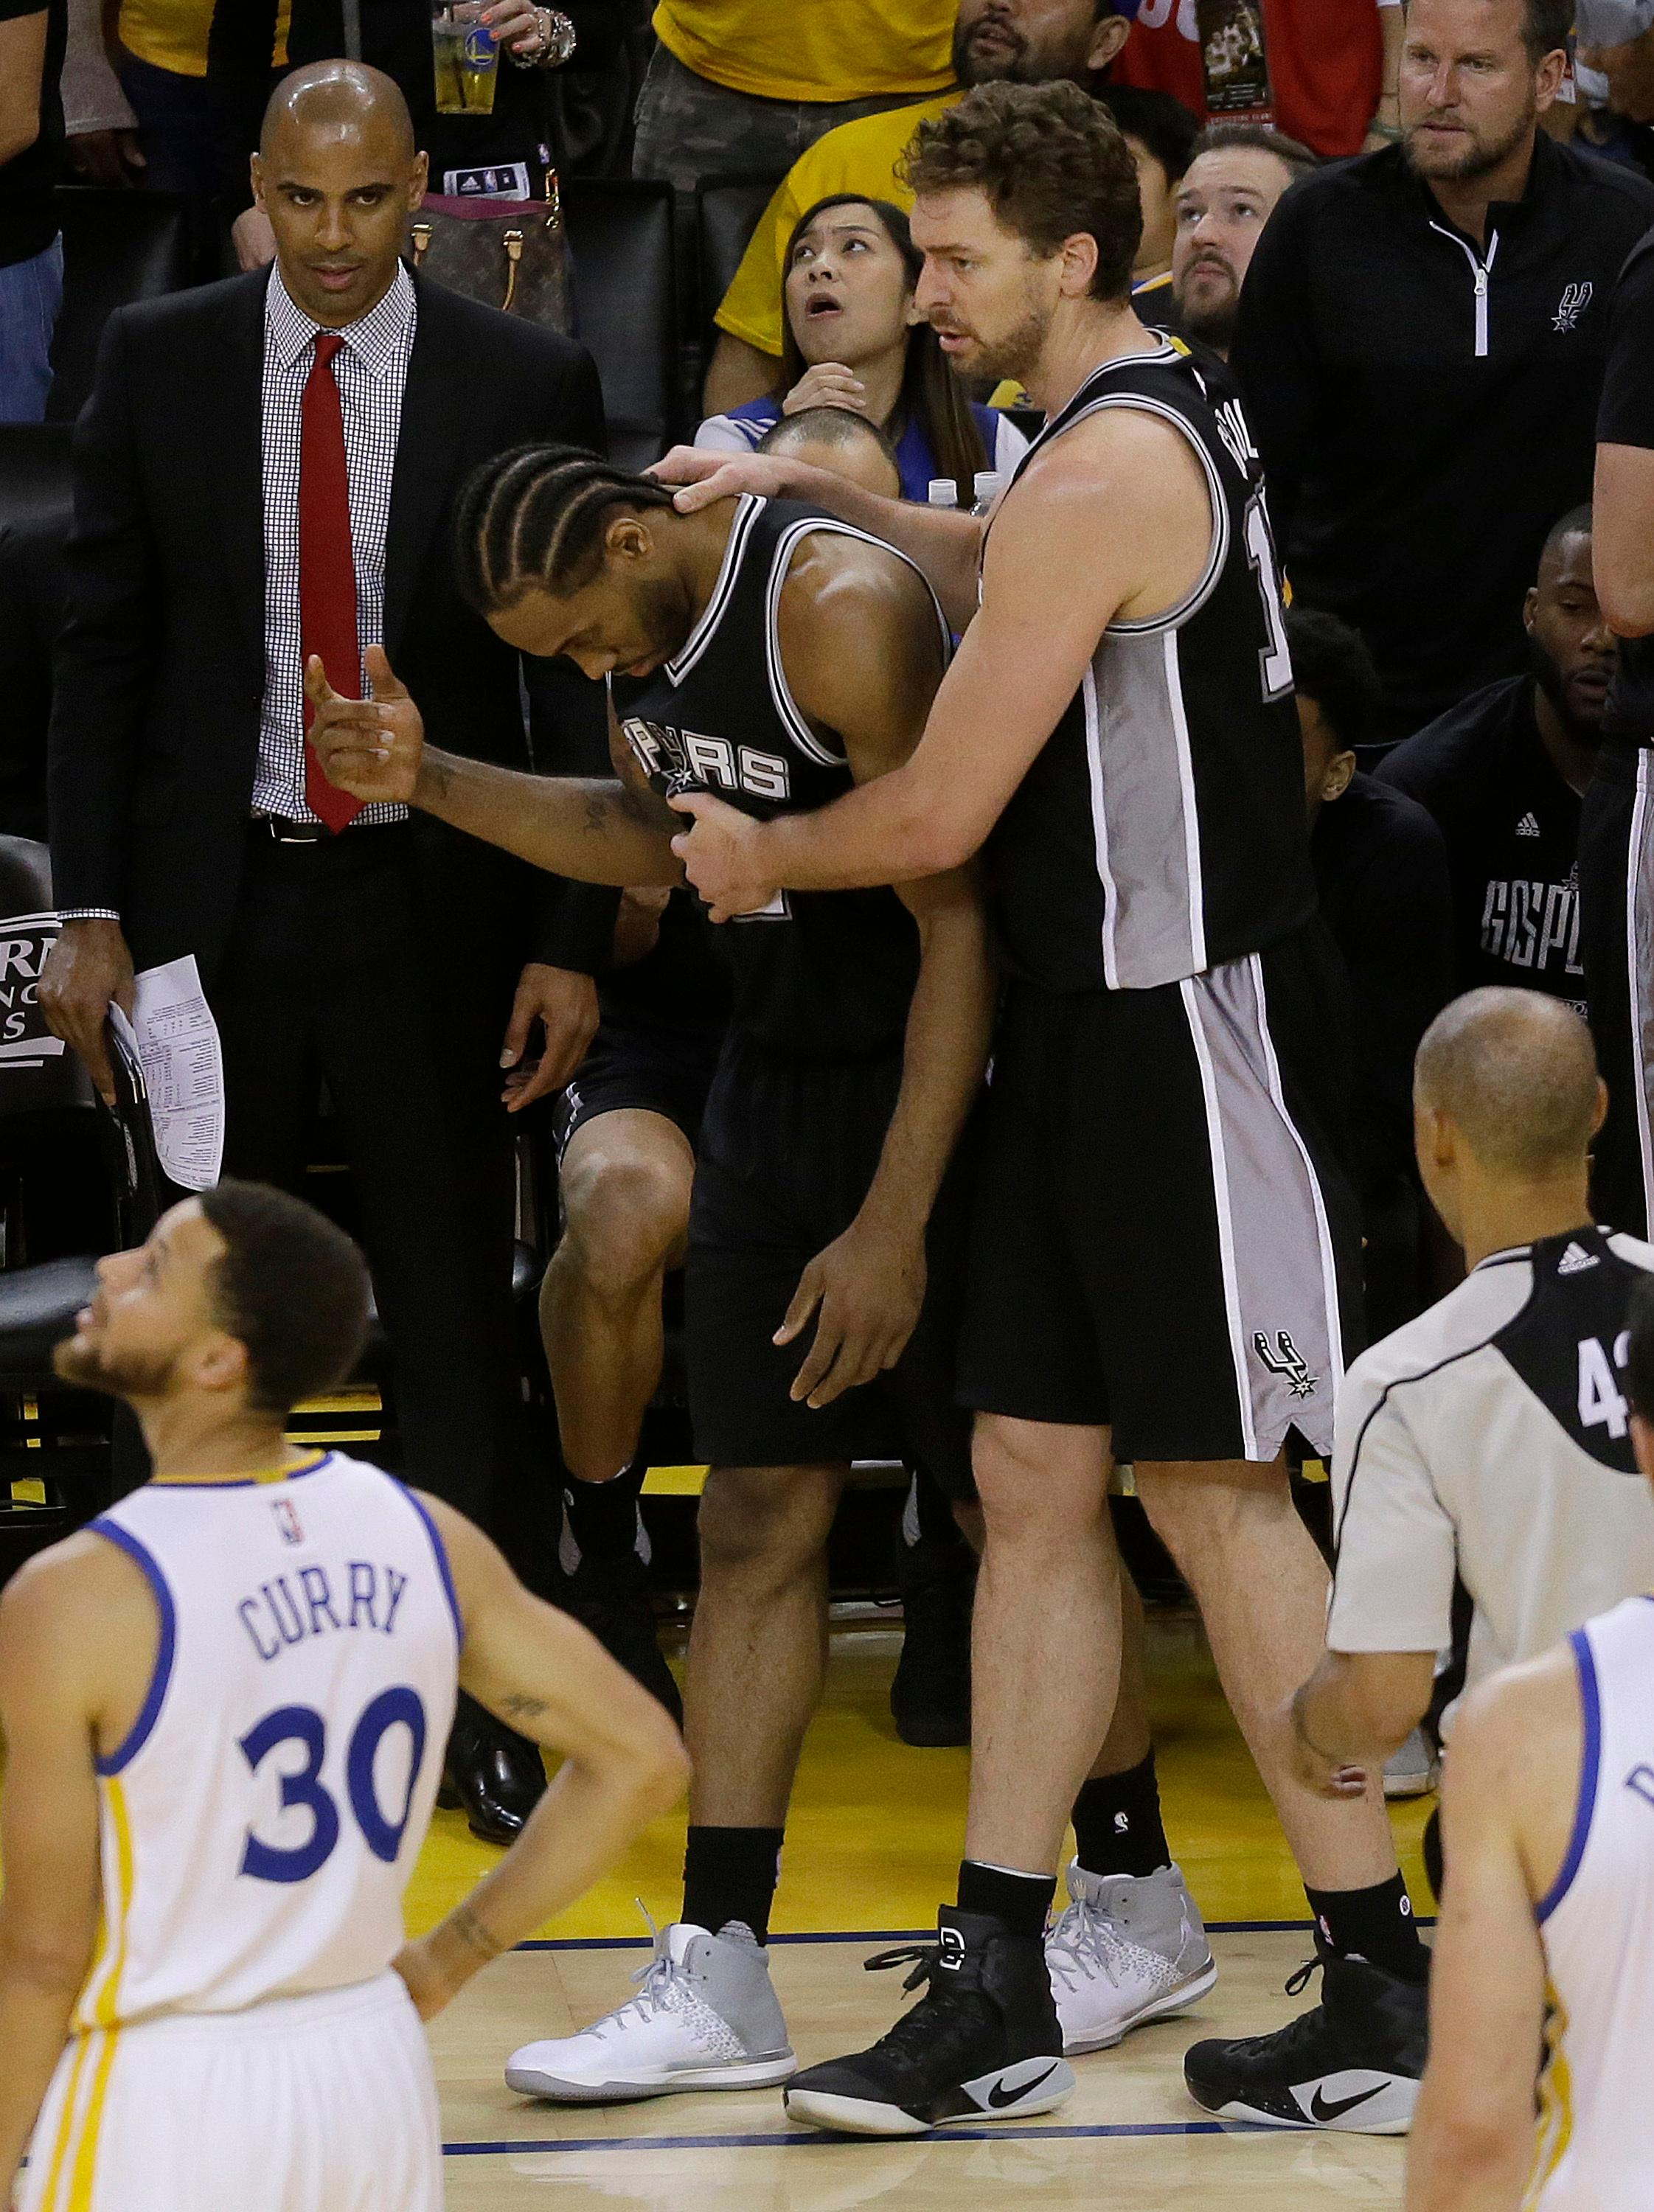 San Antonio Spurs forward Kawhi Leonard, center left, gestures next to center Pau Gasol during the second half of Game 1 of the NBA basketball Western Conference finals against the Golden State Warriors in Oakland, Calif., Sunday, May 14, 2017. The Warriors won 113-111. (AP Photo/Jeff Chiu)